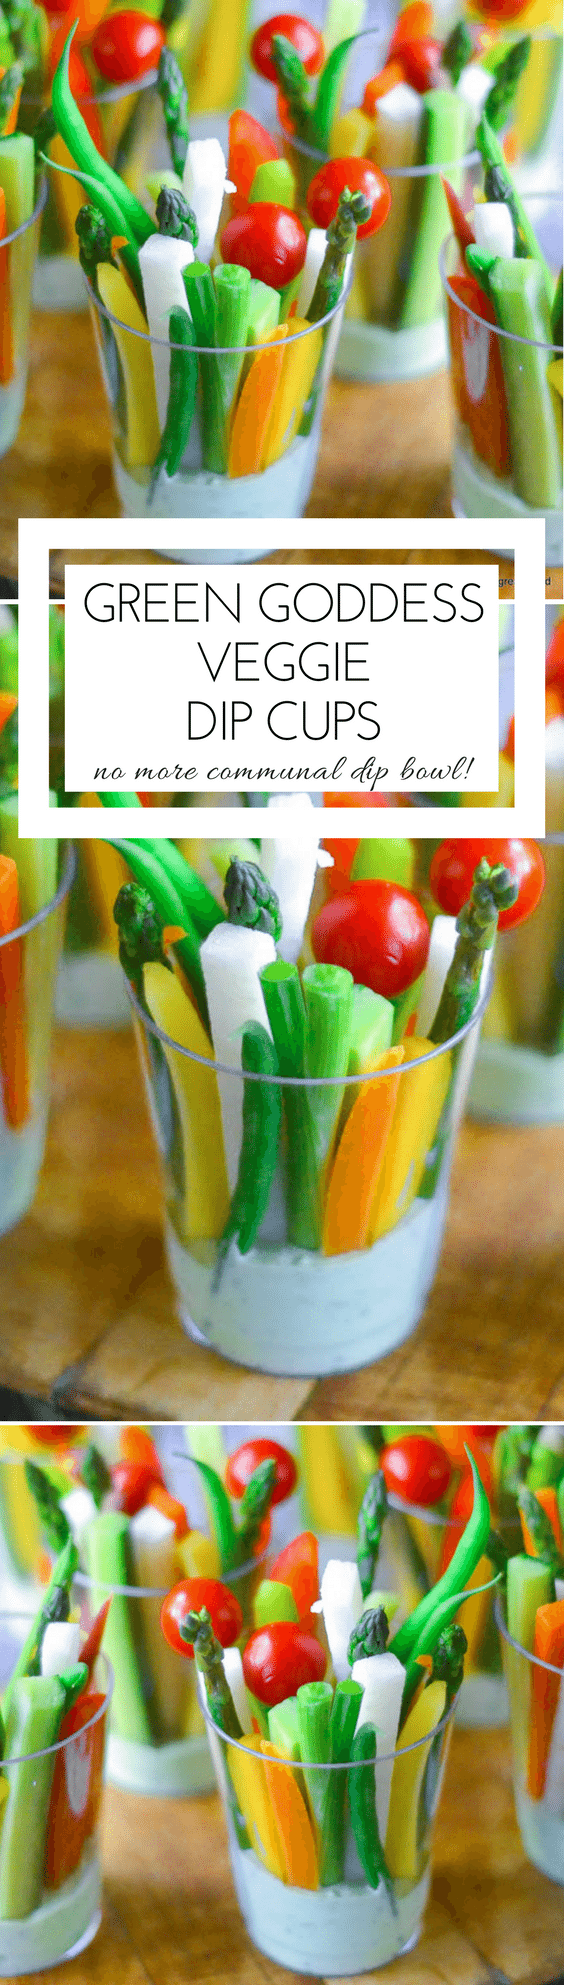 Green Goddess Veggie Dip Cups are super problem solvers --- keep a bunch of these in the fridge and you won't even think about that bag of chips...and let's just say that the dreaded communal dip bowl is now a thing of the past. #appetizers #healthy #crudites #fingerfood #portableappetizer #cuteappetizer #4thofJulyappetizer #summerappetizer #picnic #barbecue #carrotsticks #vegetables